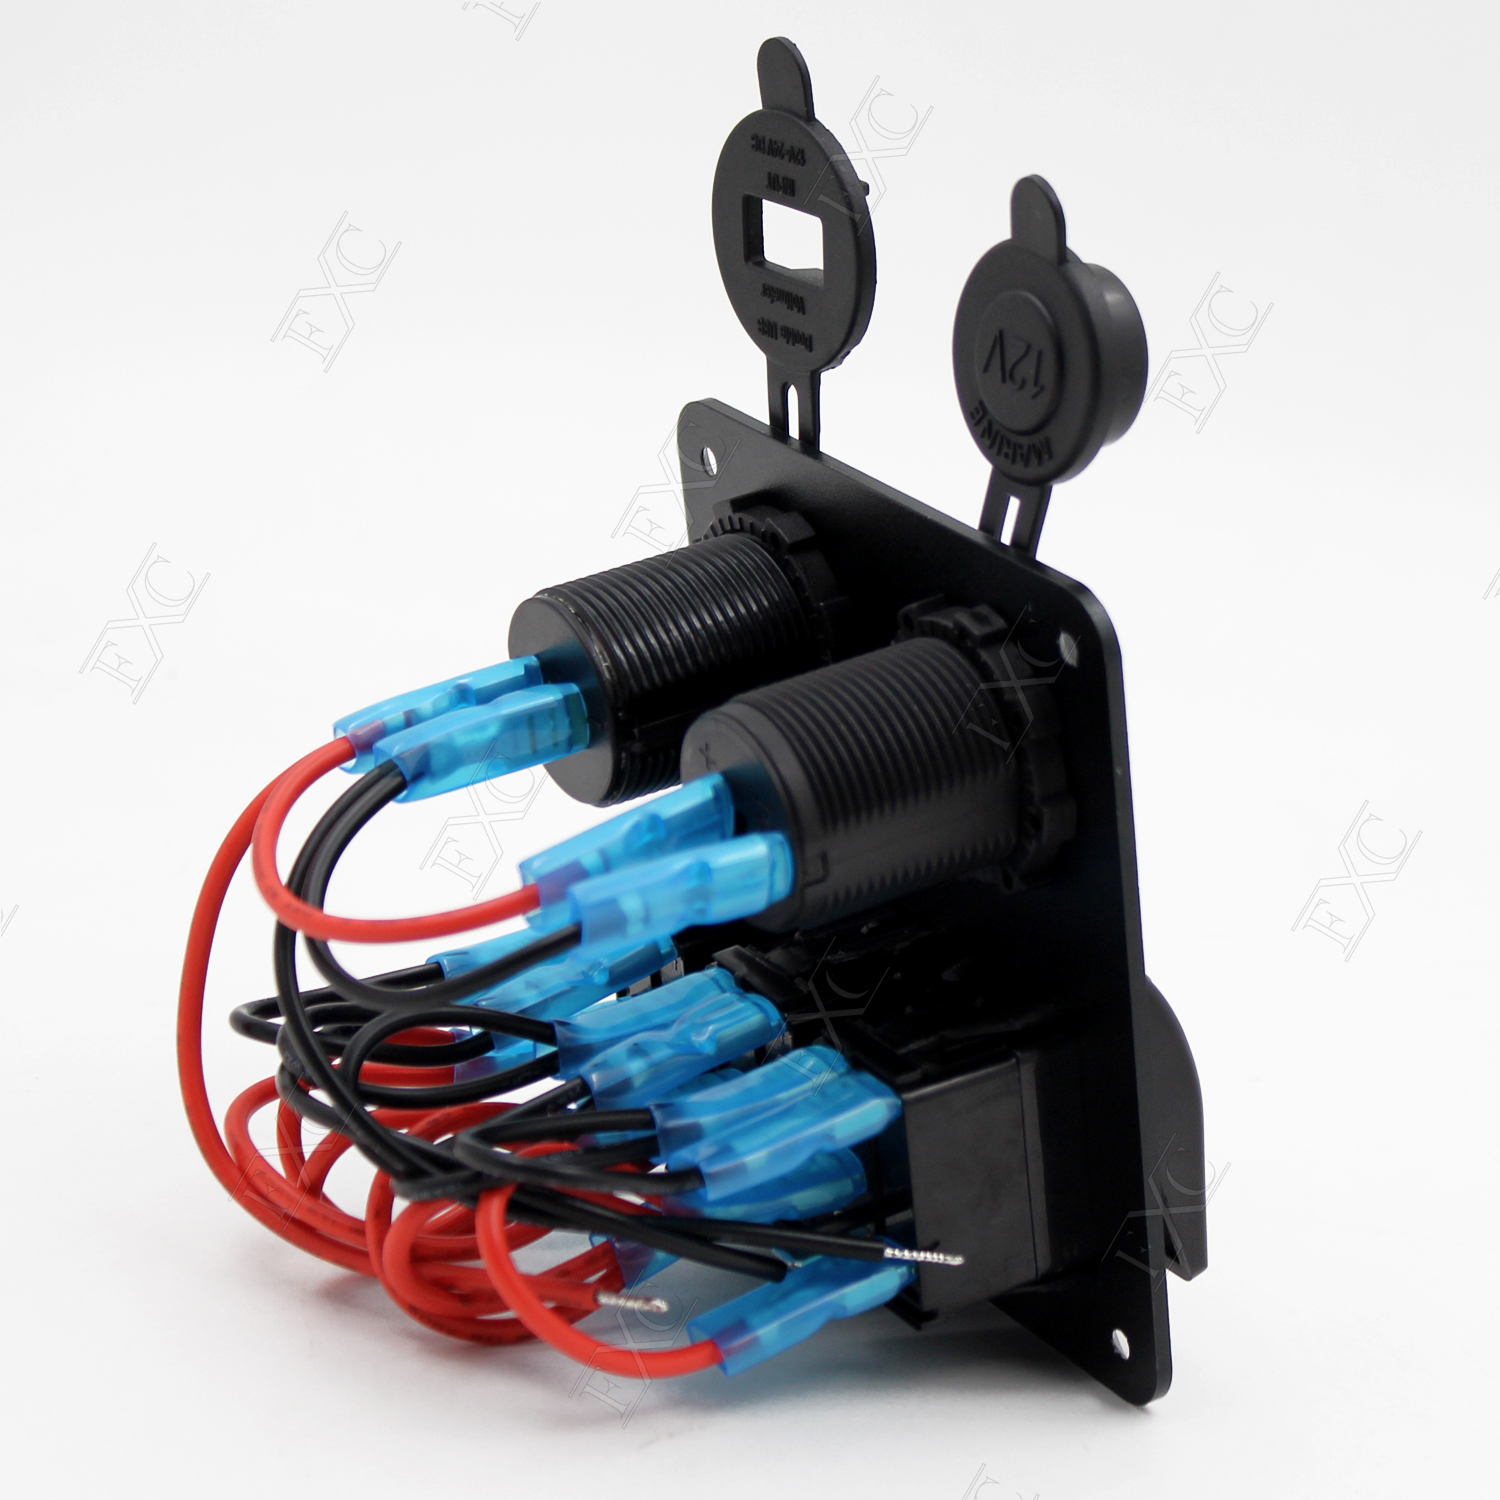 12v 24v 3 Gang Led Rocker Switch Panel Circuit Breakers Charger For Boat Marine Breaker 4 Switches Ebay